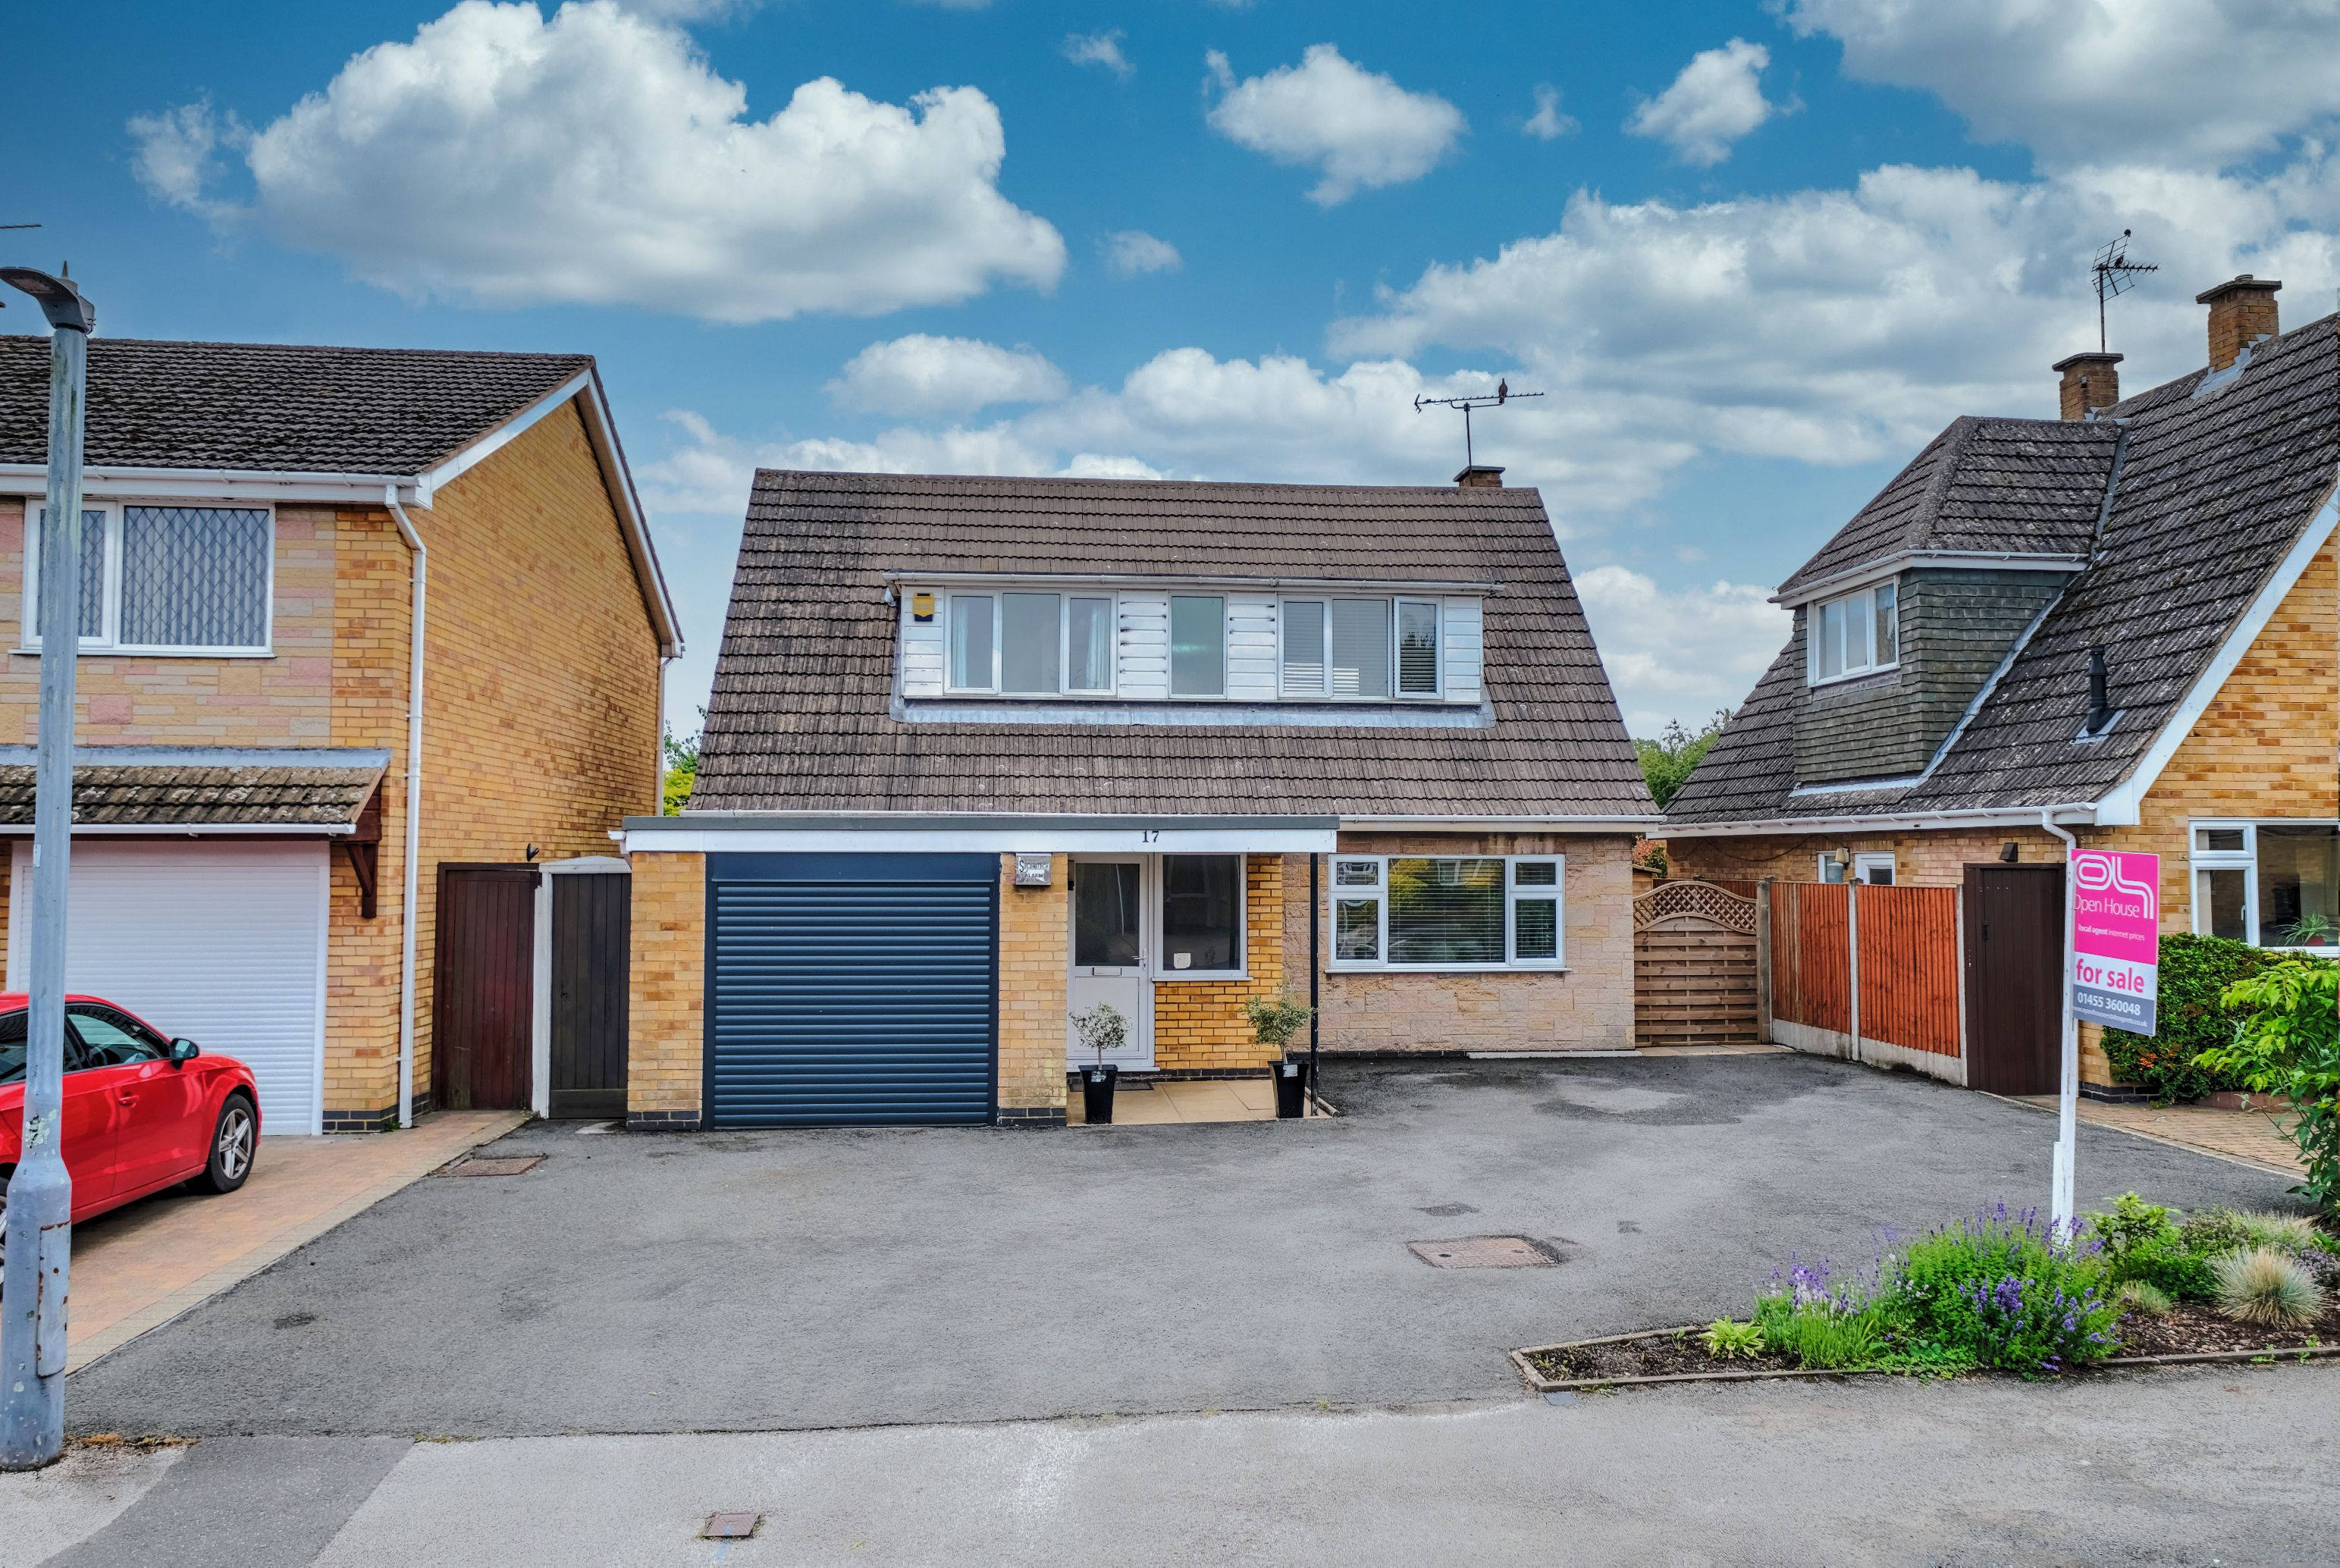 3 bed detached house for sale in Ambleside Way, Nuneaton, CV11, Nuneaton  - Property Image 2